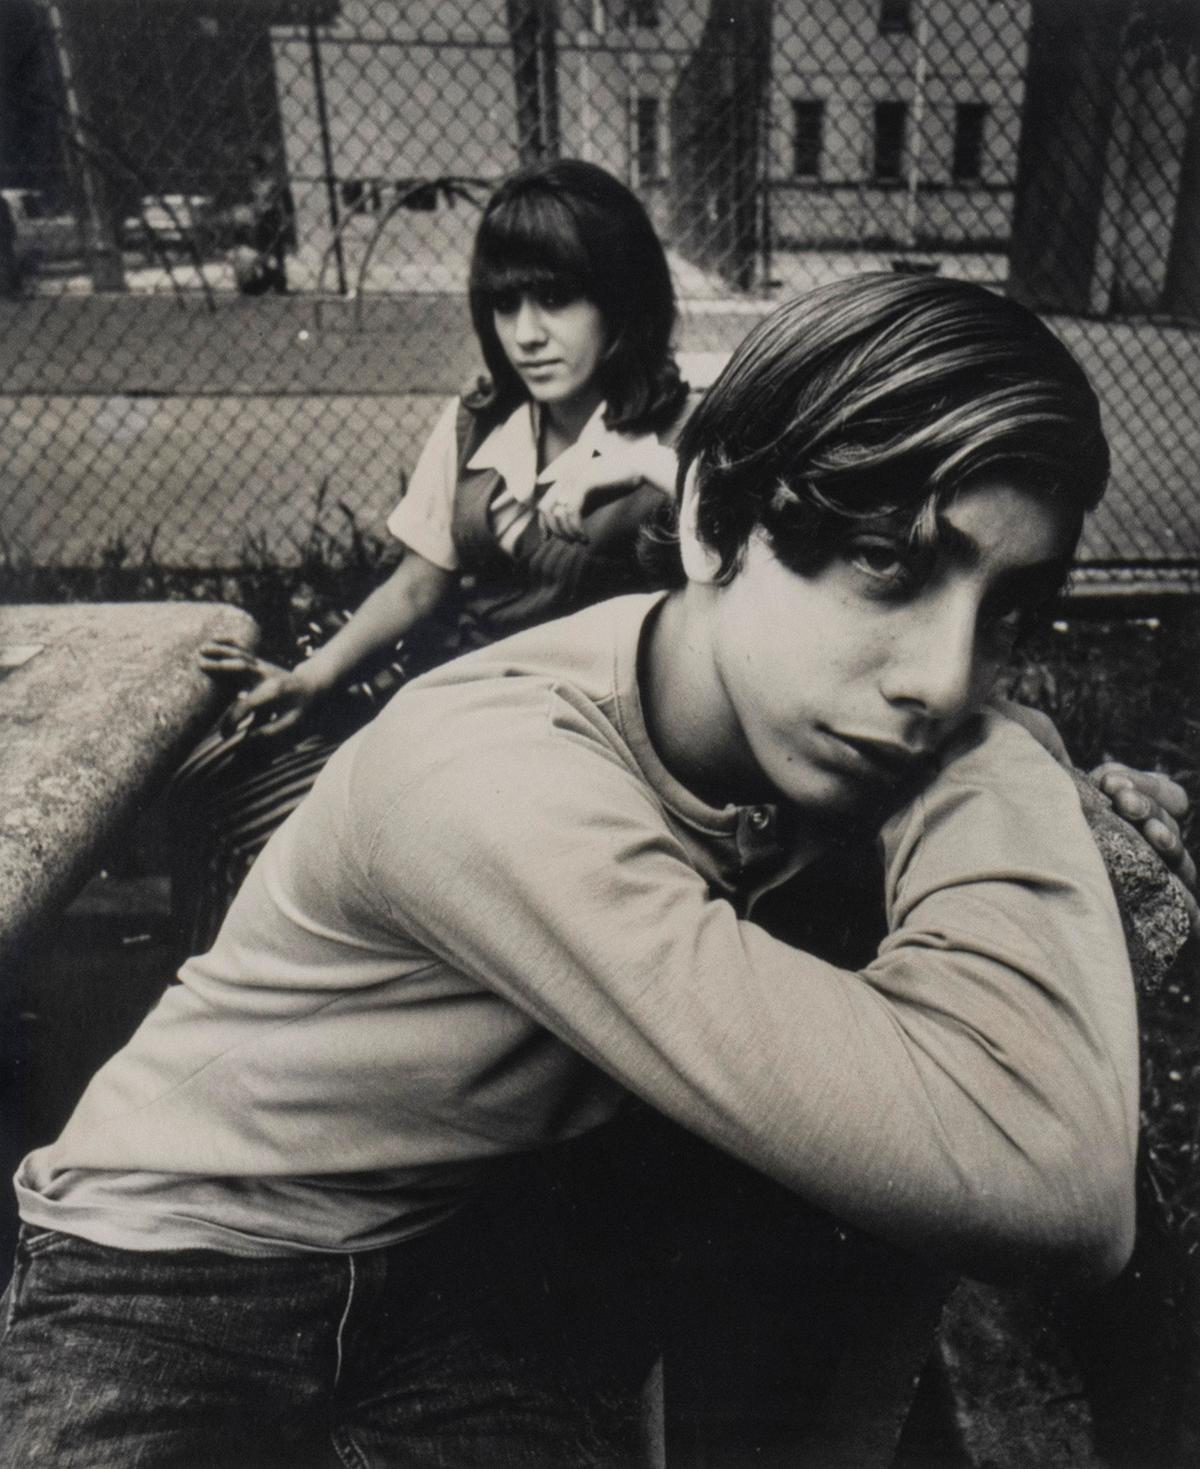 Two Teenagers in a Housing Project Park